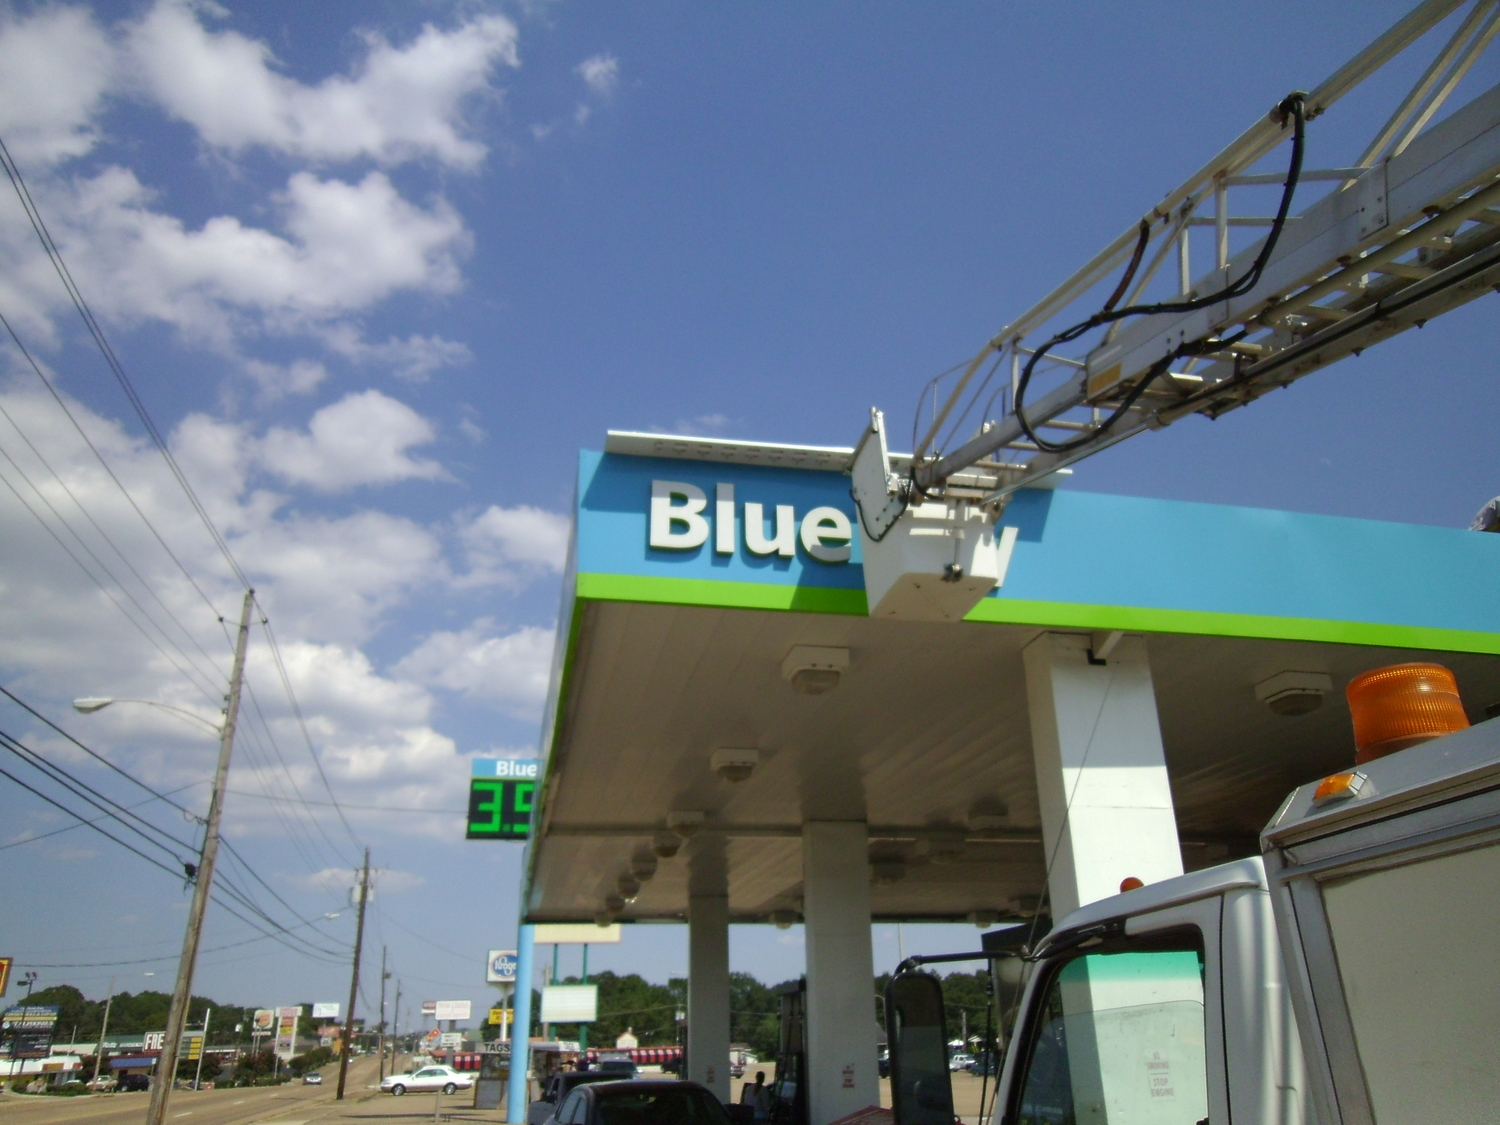 Craddock+oil;+Blue+Sky+#204;+Delaware+Ave.;+McComb,+MS+(8).jpg